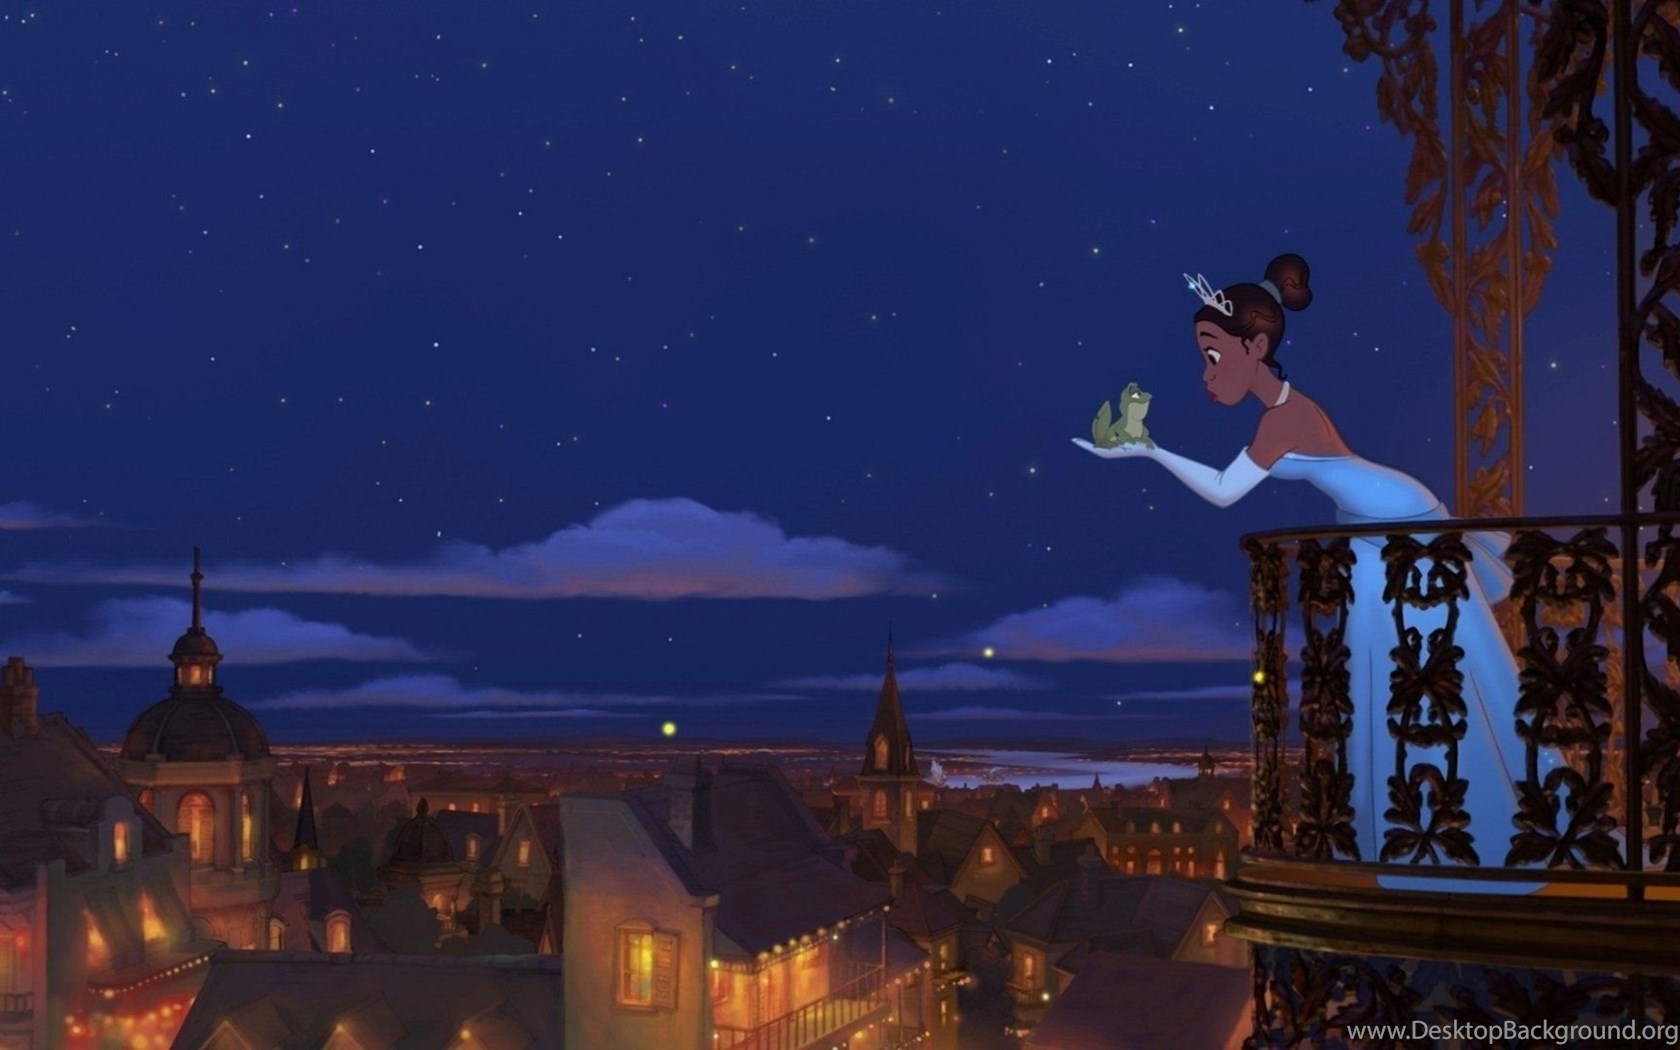 Cartoons Frog Tiana The Princess And The Frog Disney Wallpapers